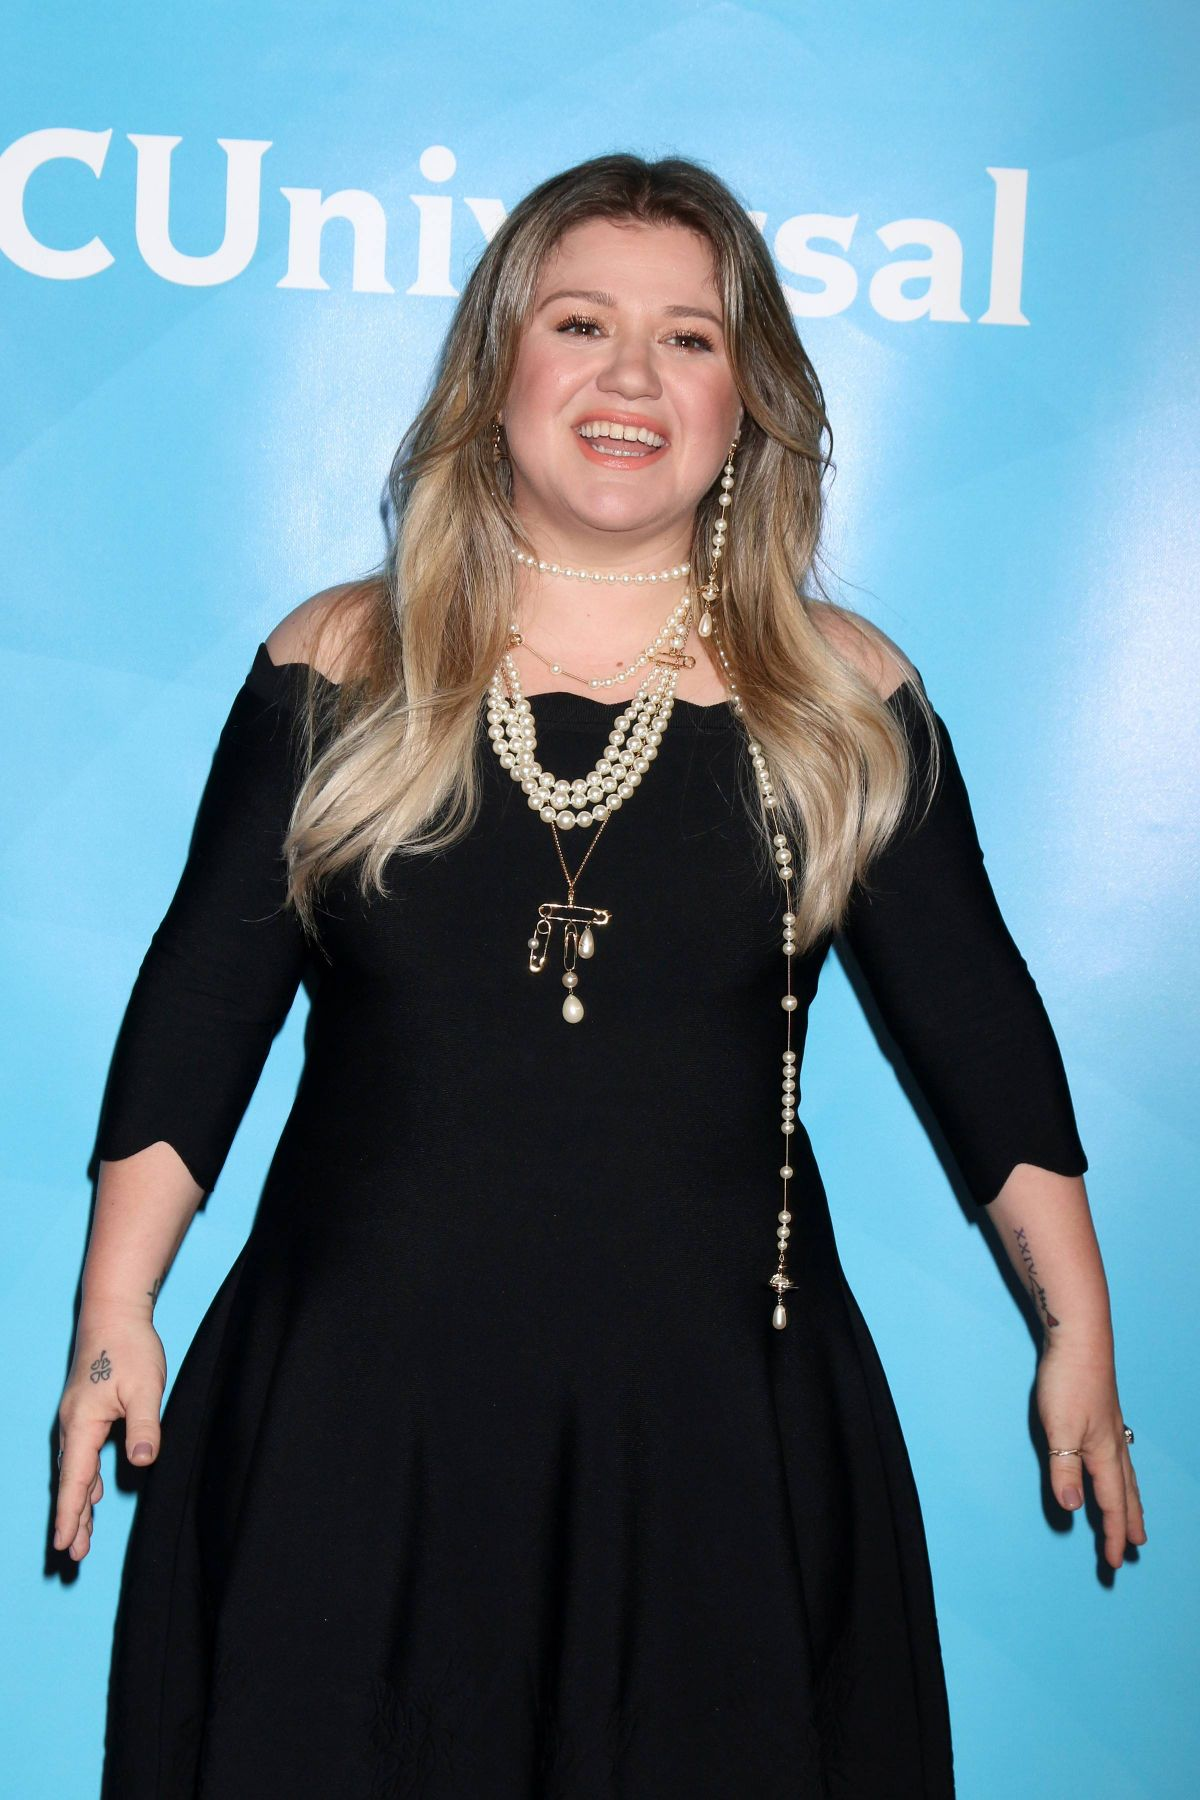 KELLY CLARKSON at NBC/Universal TCA Winter Press Tour in Los Angeles ...